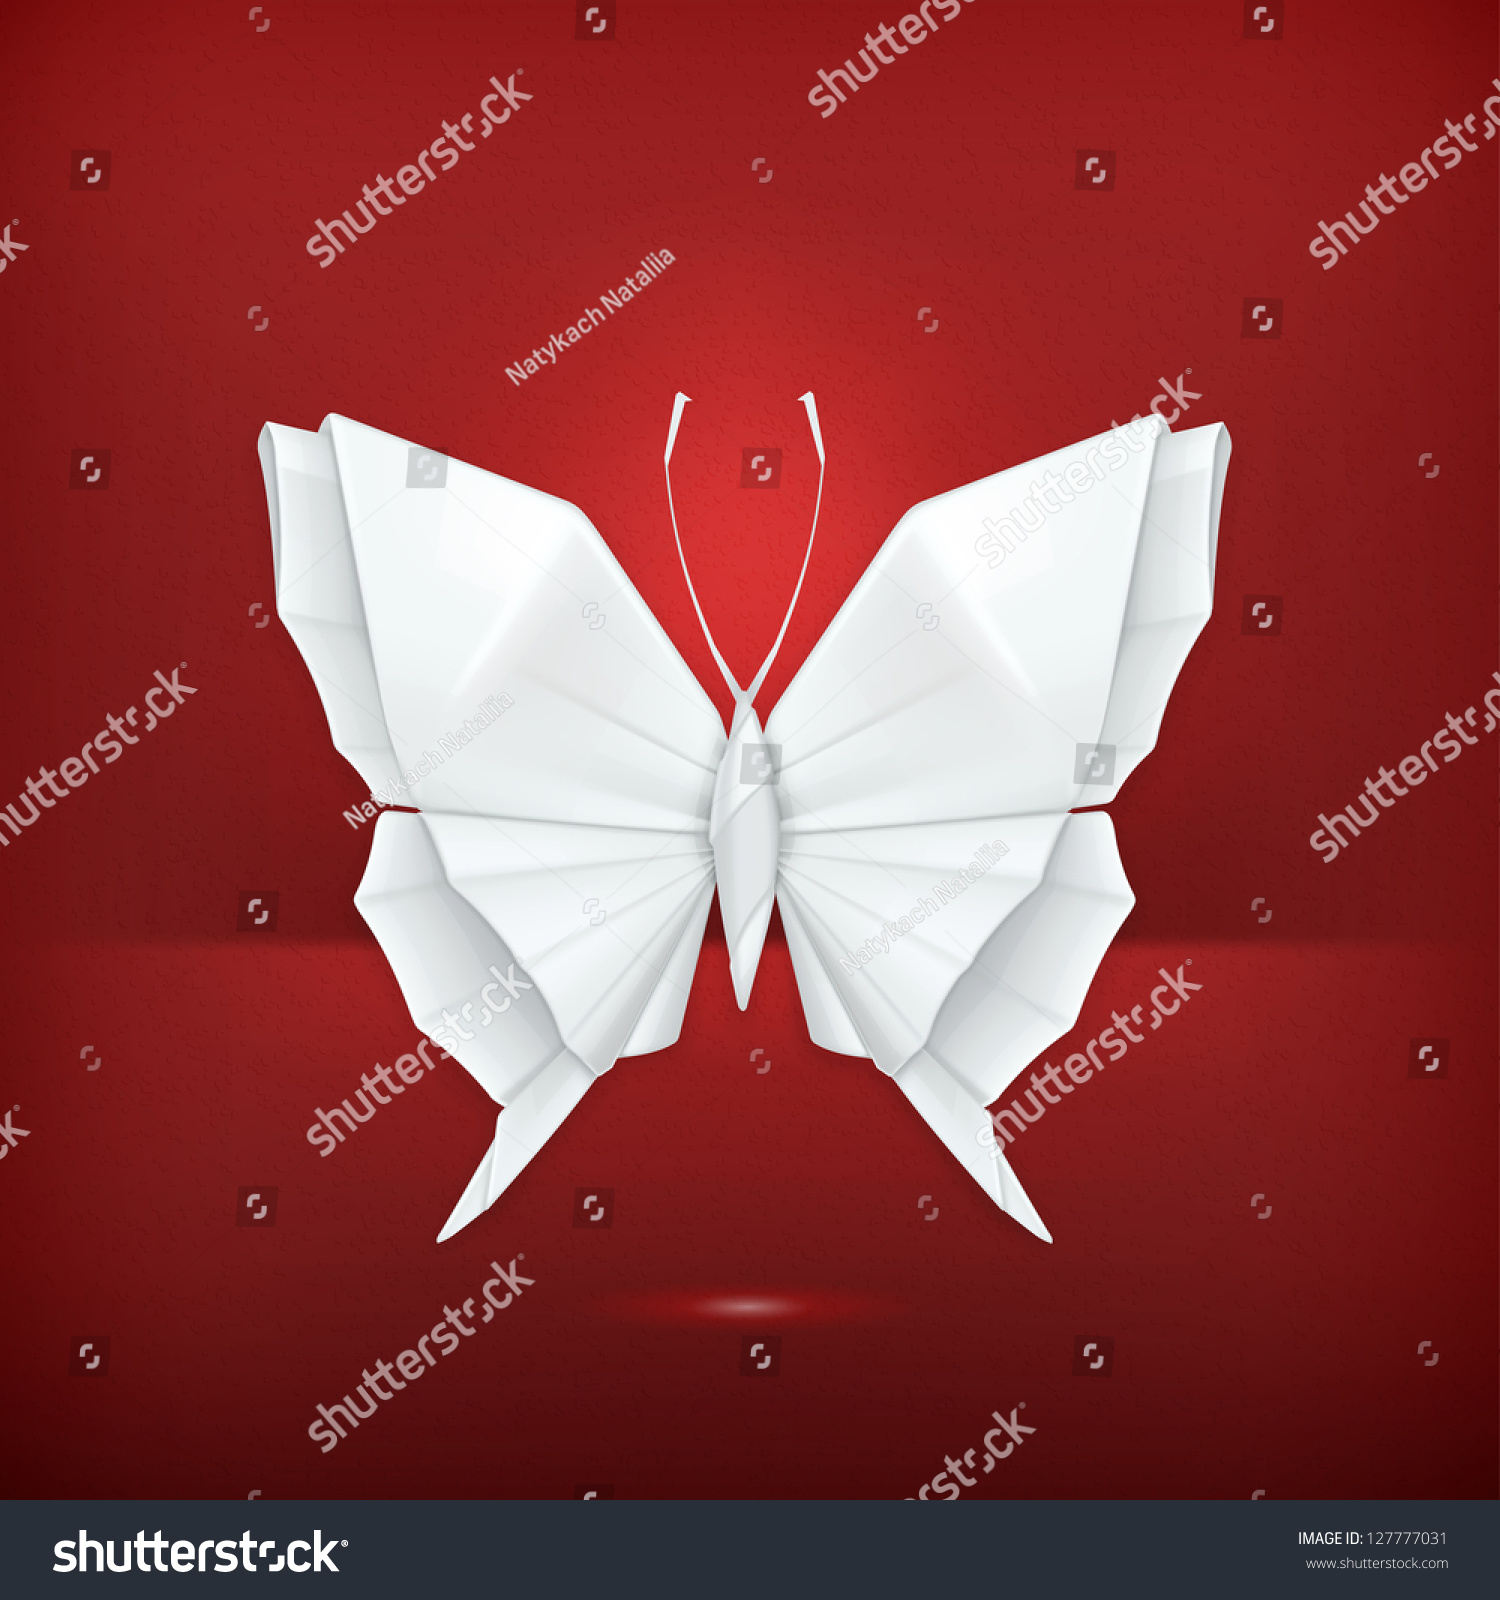 Origami Butterfly, Vector - 127777031 : Shutterstock - photo#19